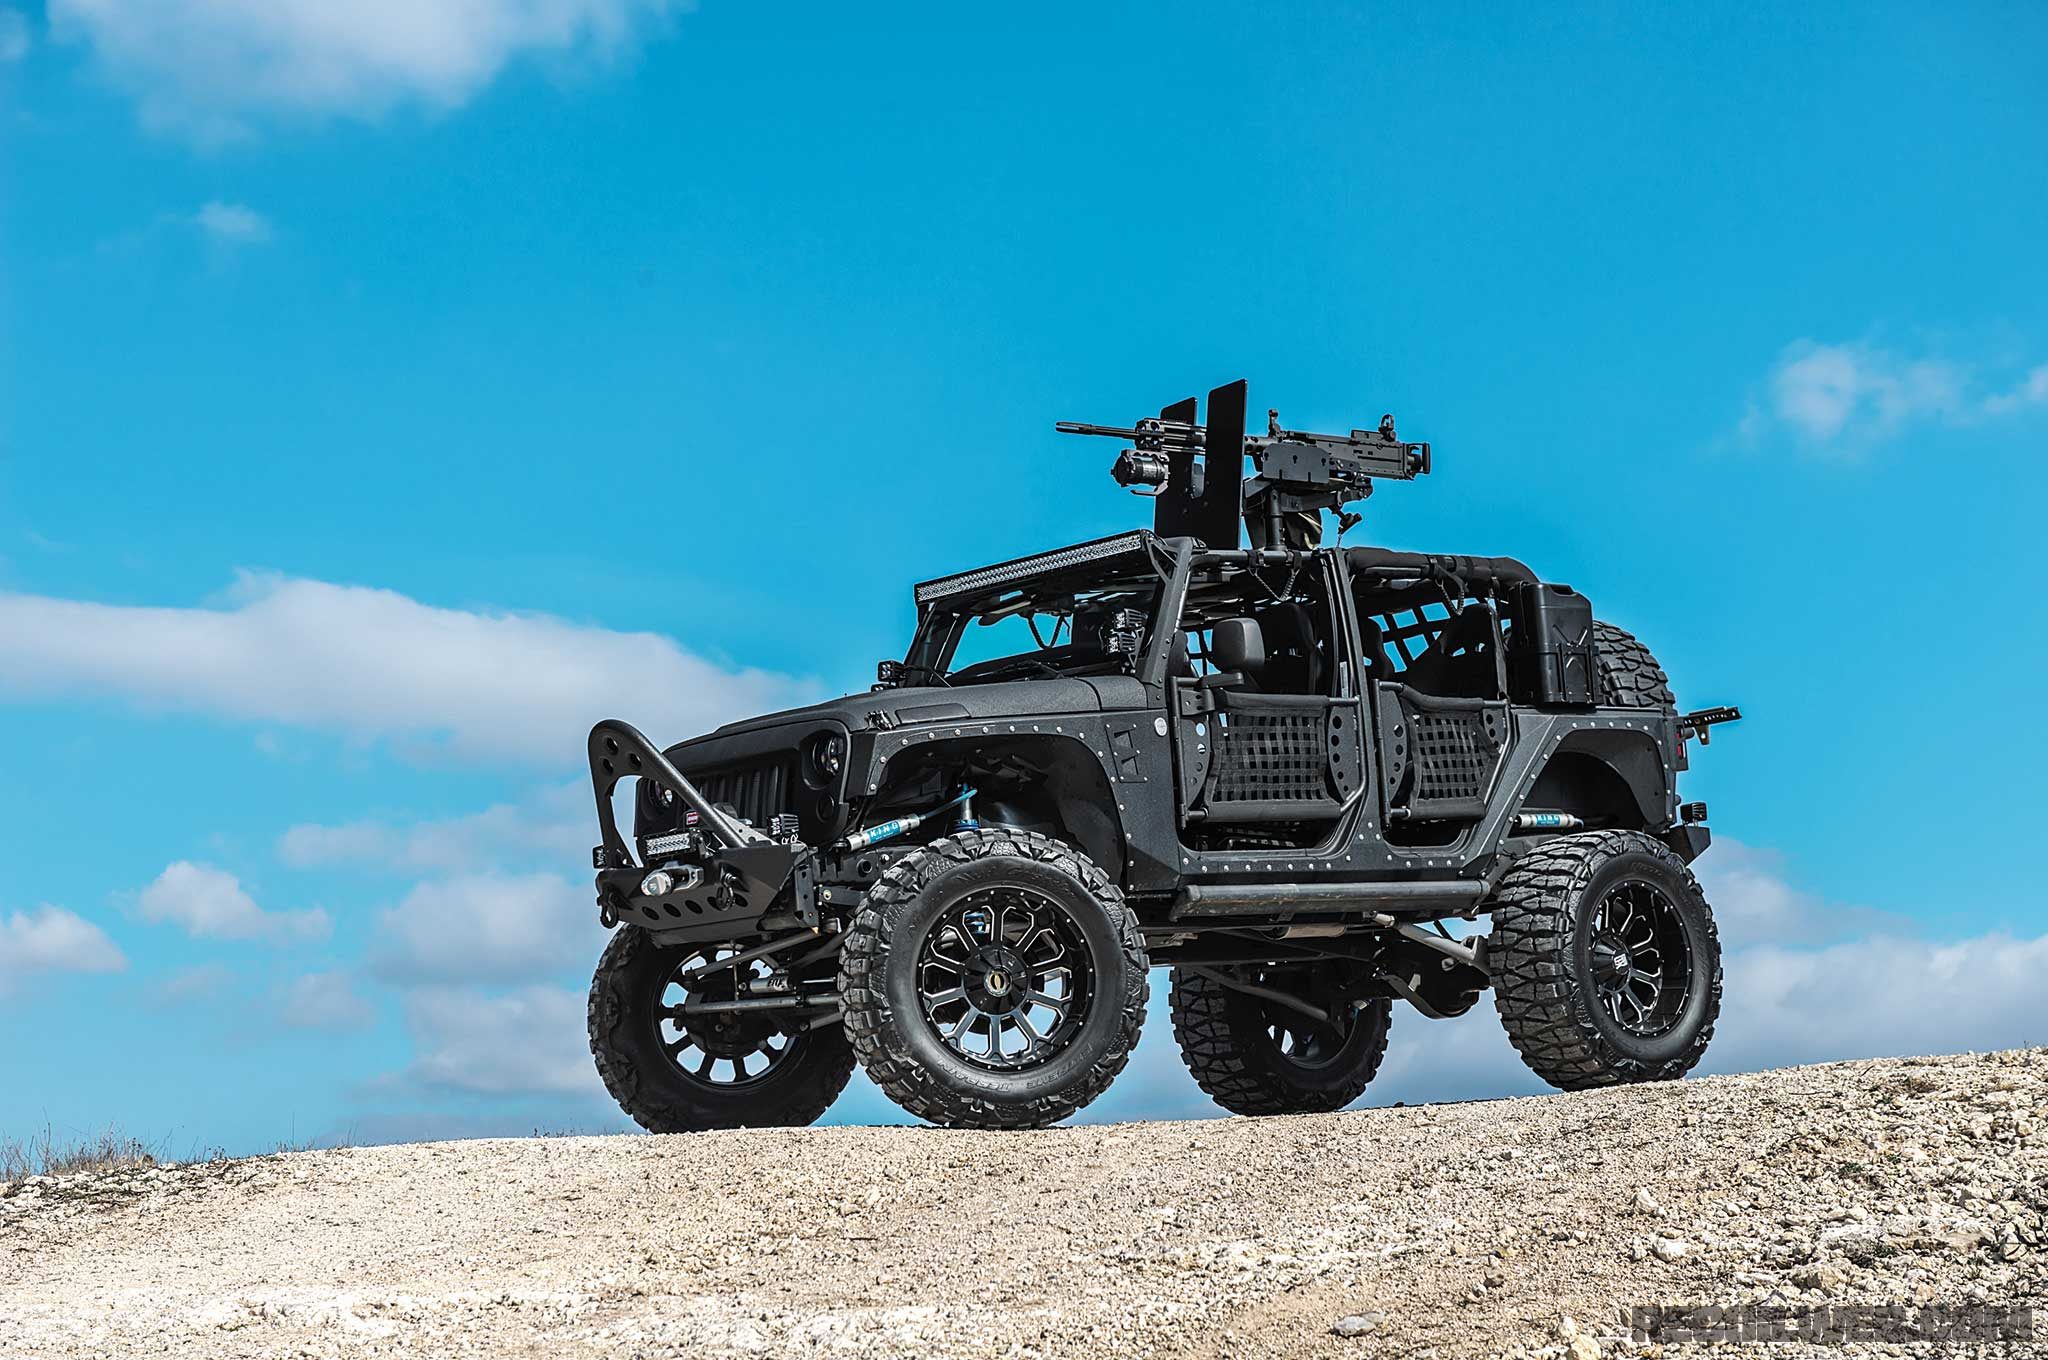 Jeep Wrangler Body Armor >> Starwood Motors Bug-Out Jeep Wrangler - Texas Instruments | RECOIL